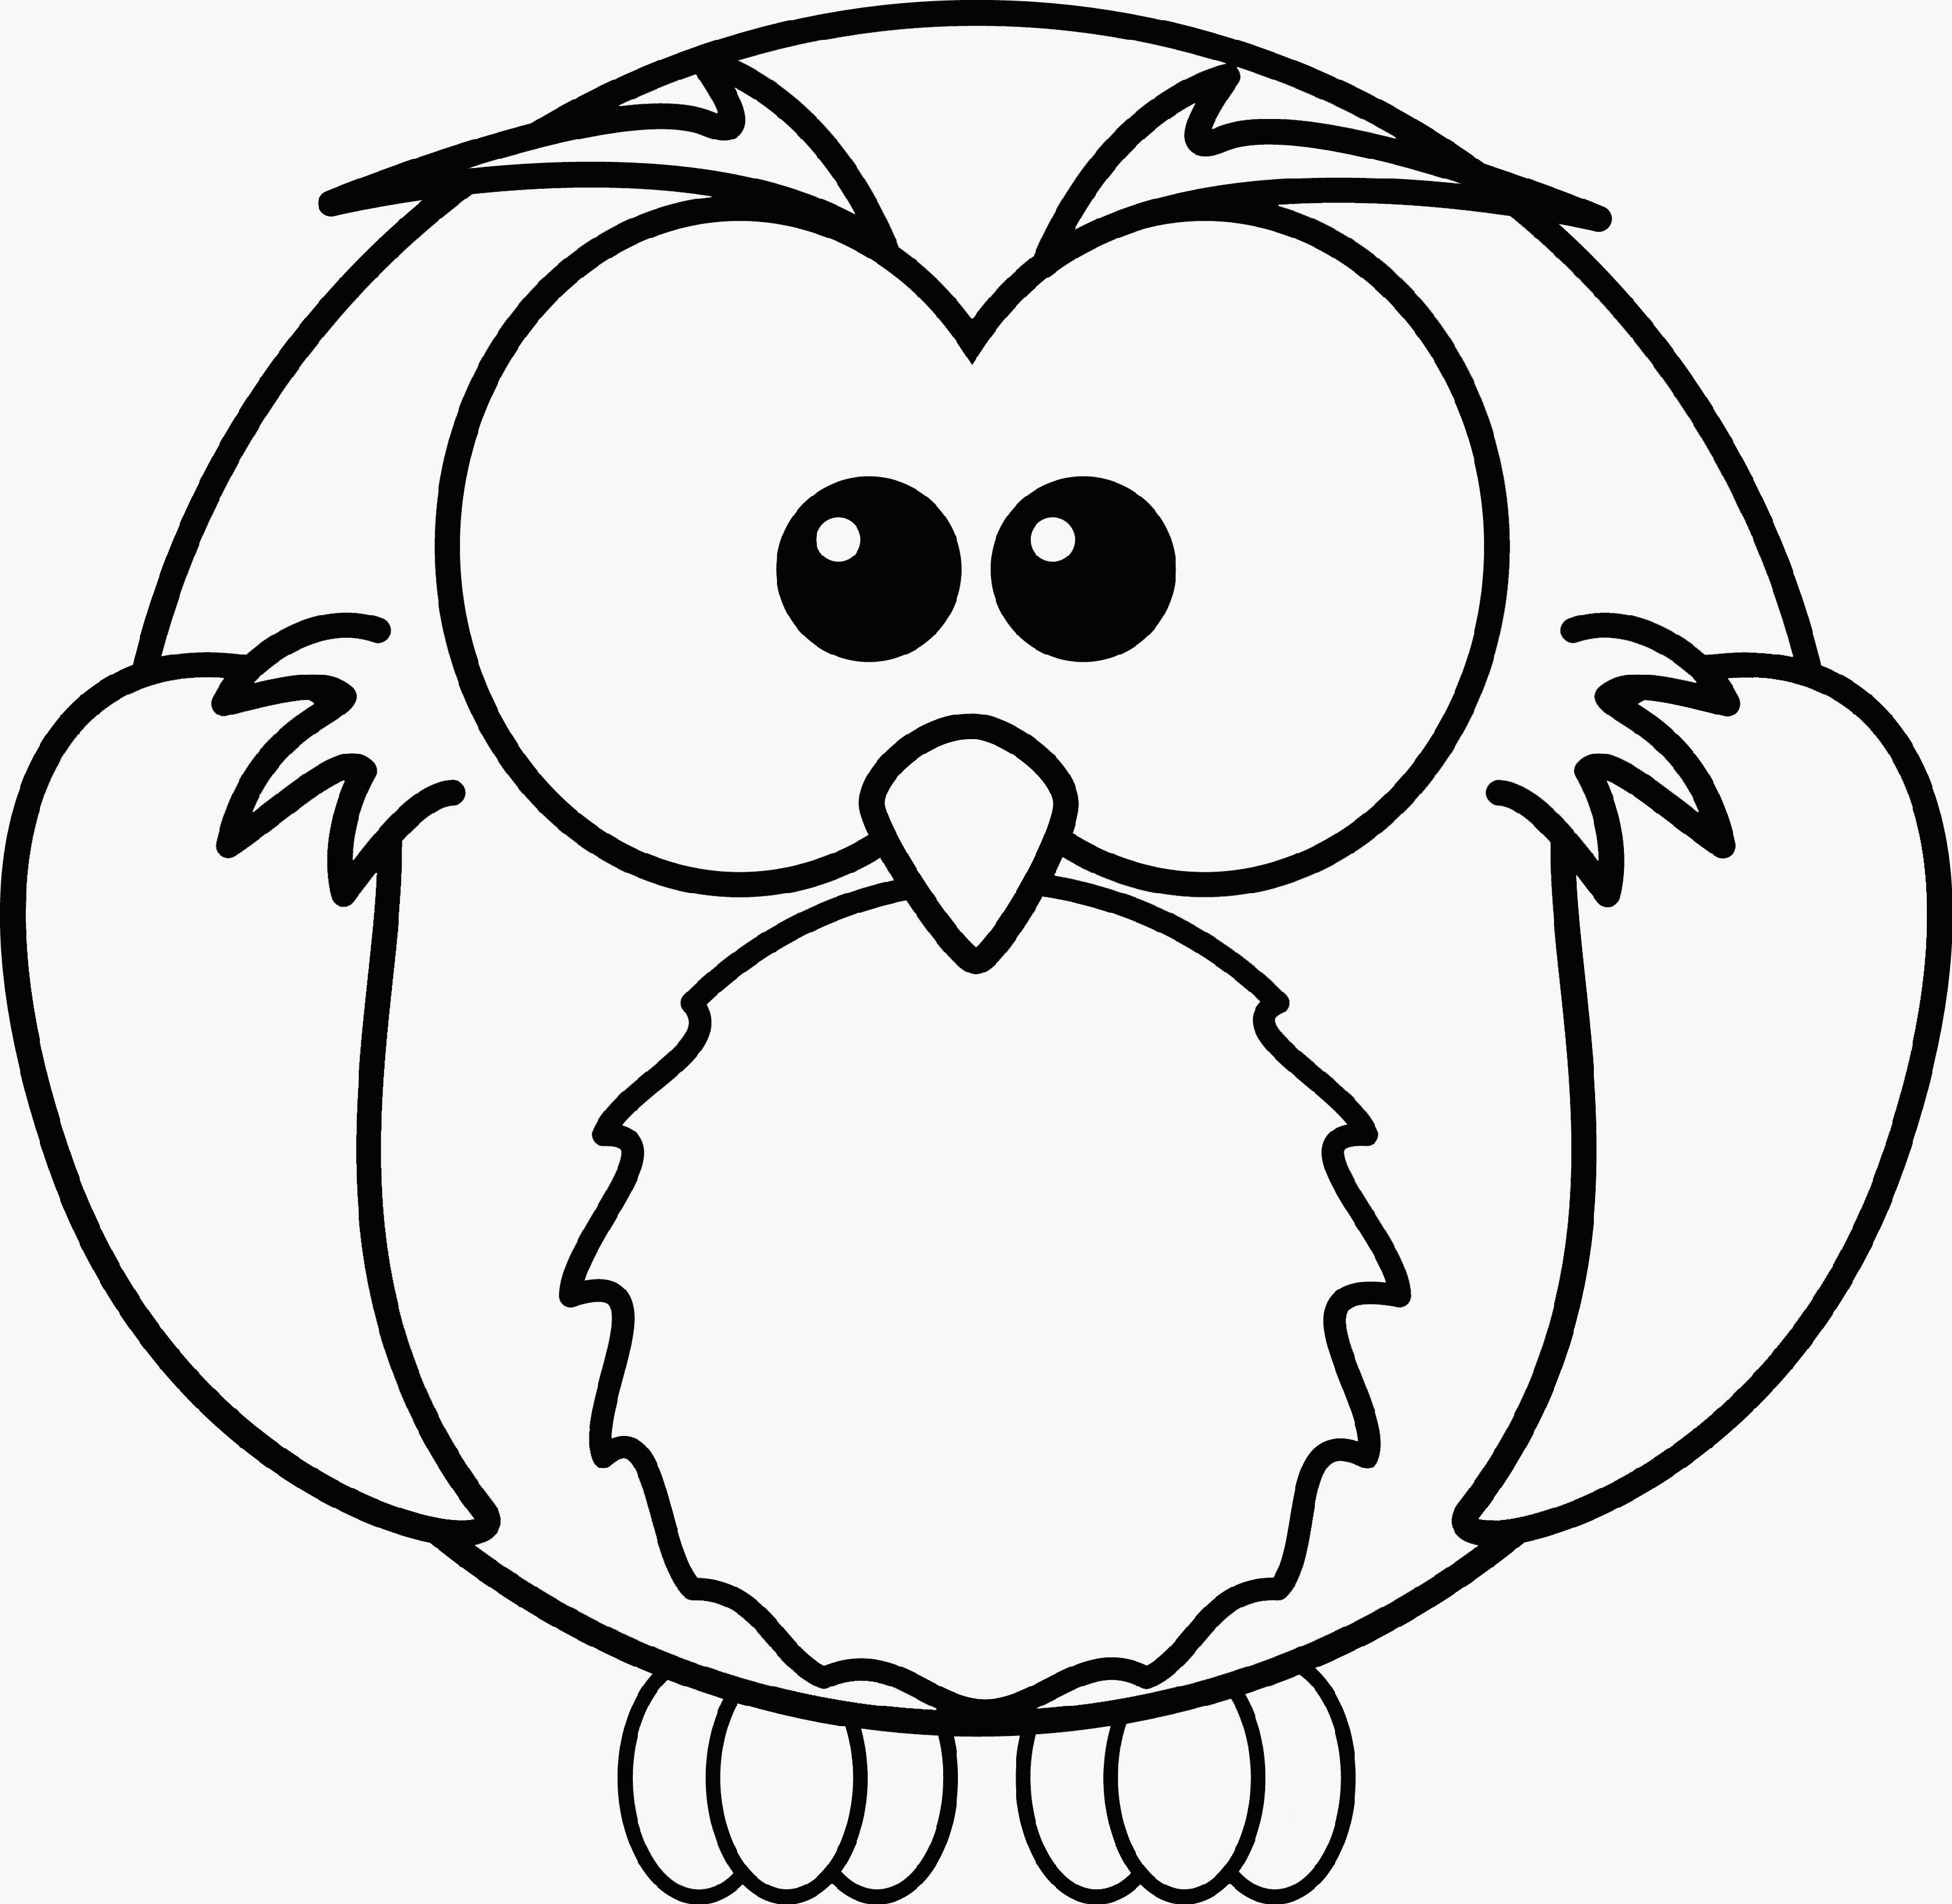 3183x3104 Adult Owl Coloring Page